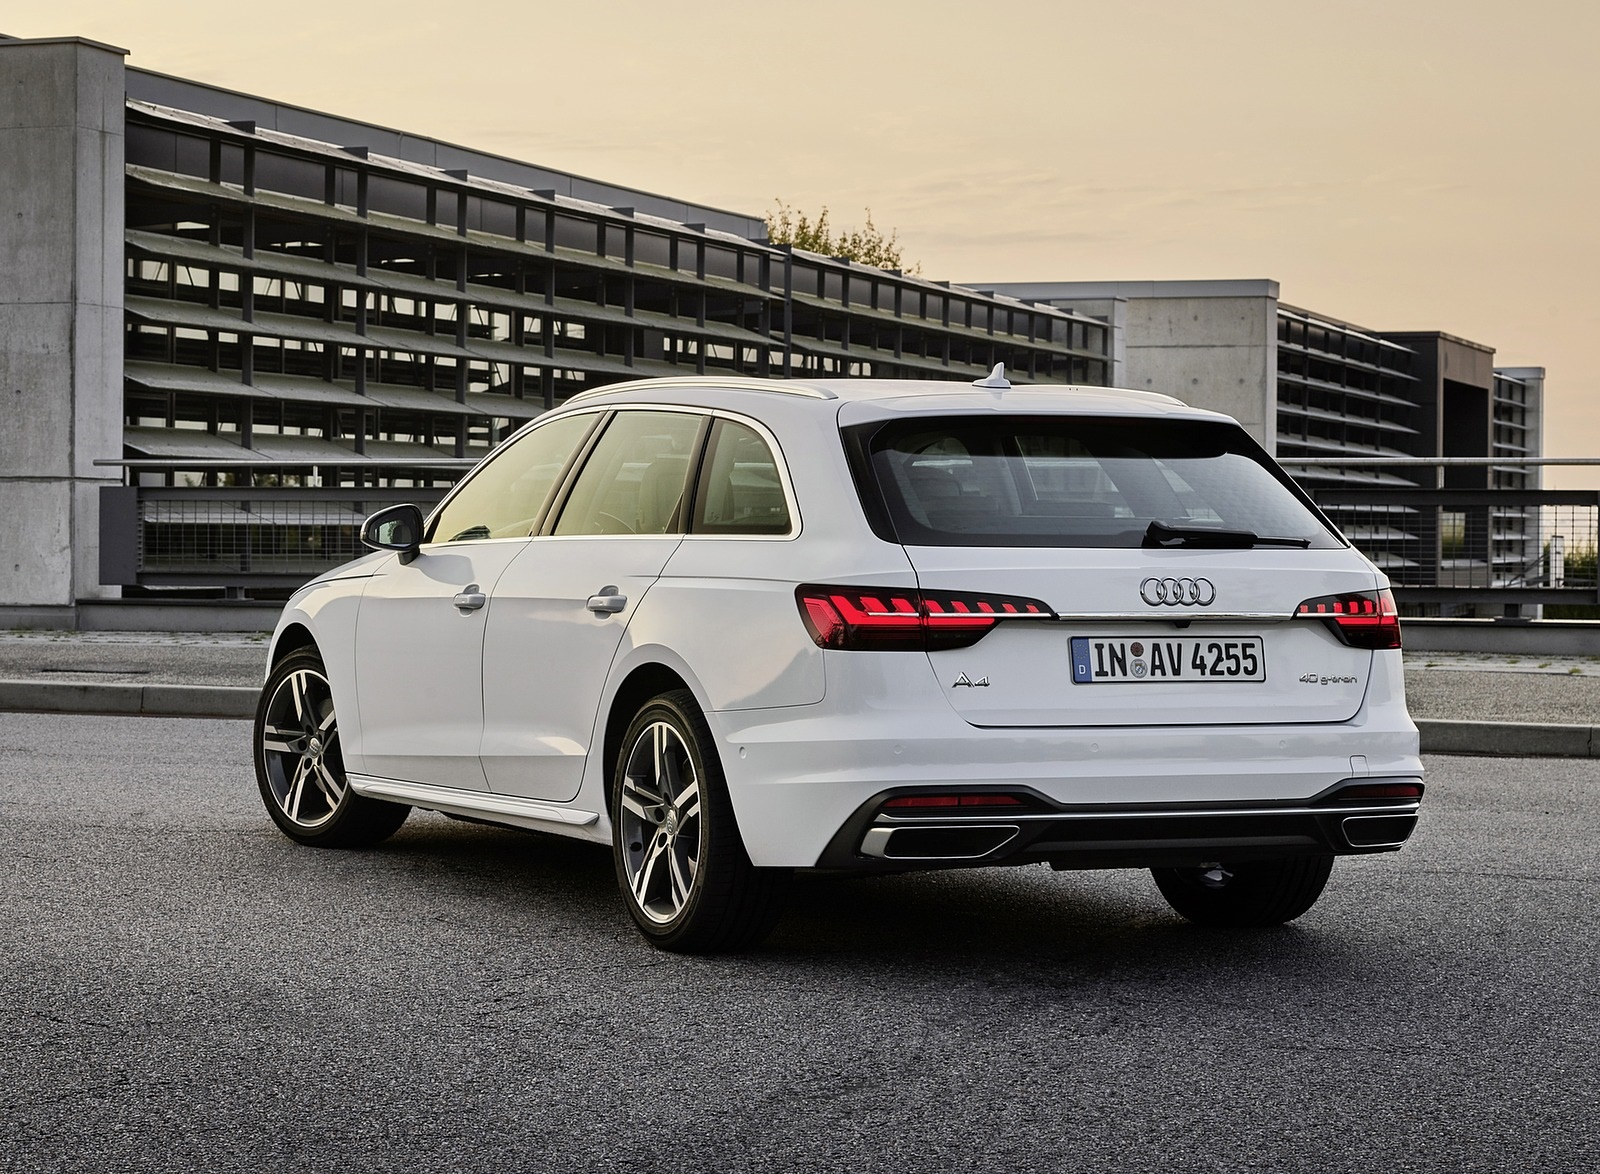 2020 Audi A4 Avant g-tron (Color: Glacier White) Rear Three-Quarter Wallpapers (6)